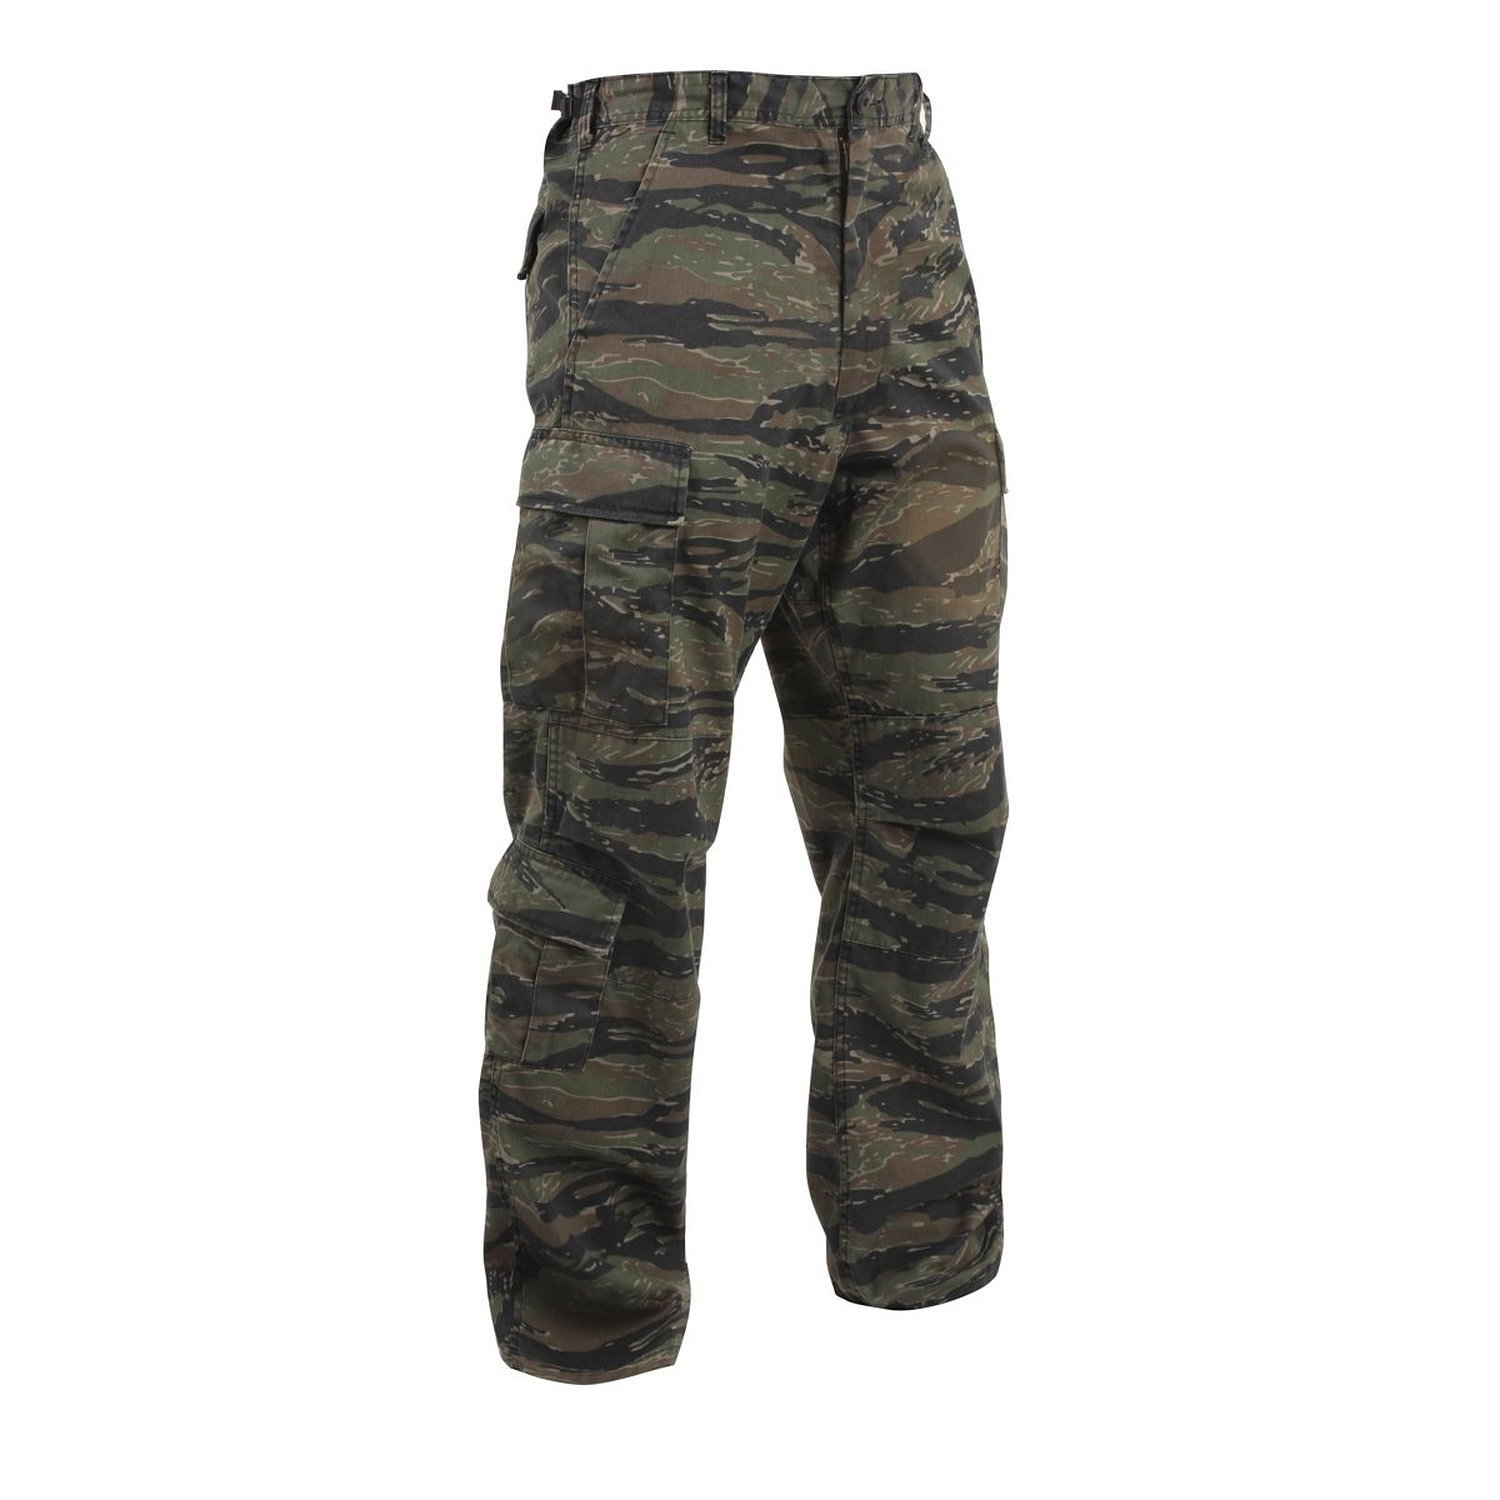 Rothco Vintage Paratrooper Fatigues, Tiger Stripe, X-Small 2710XSML